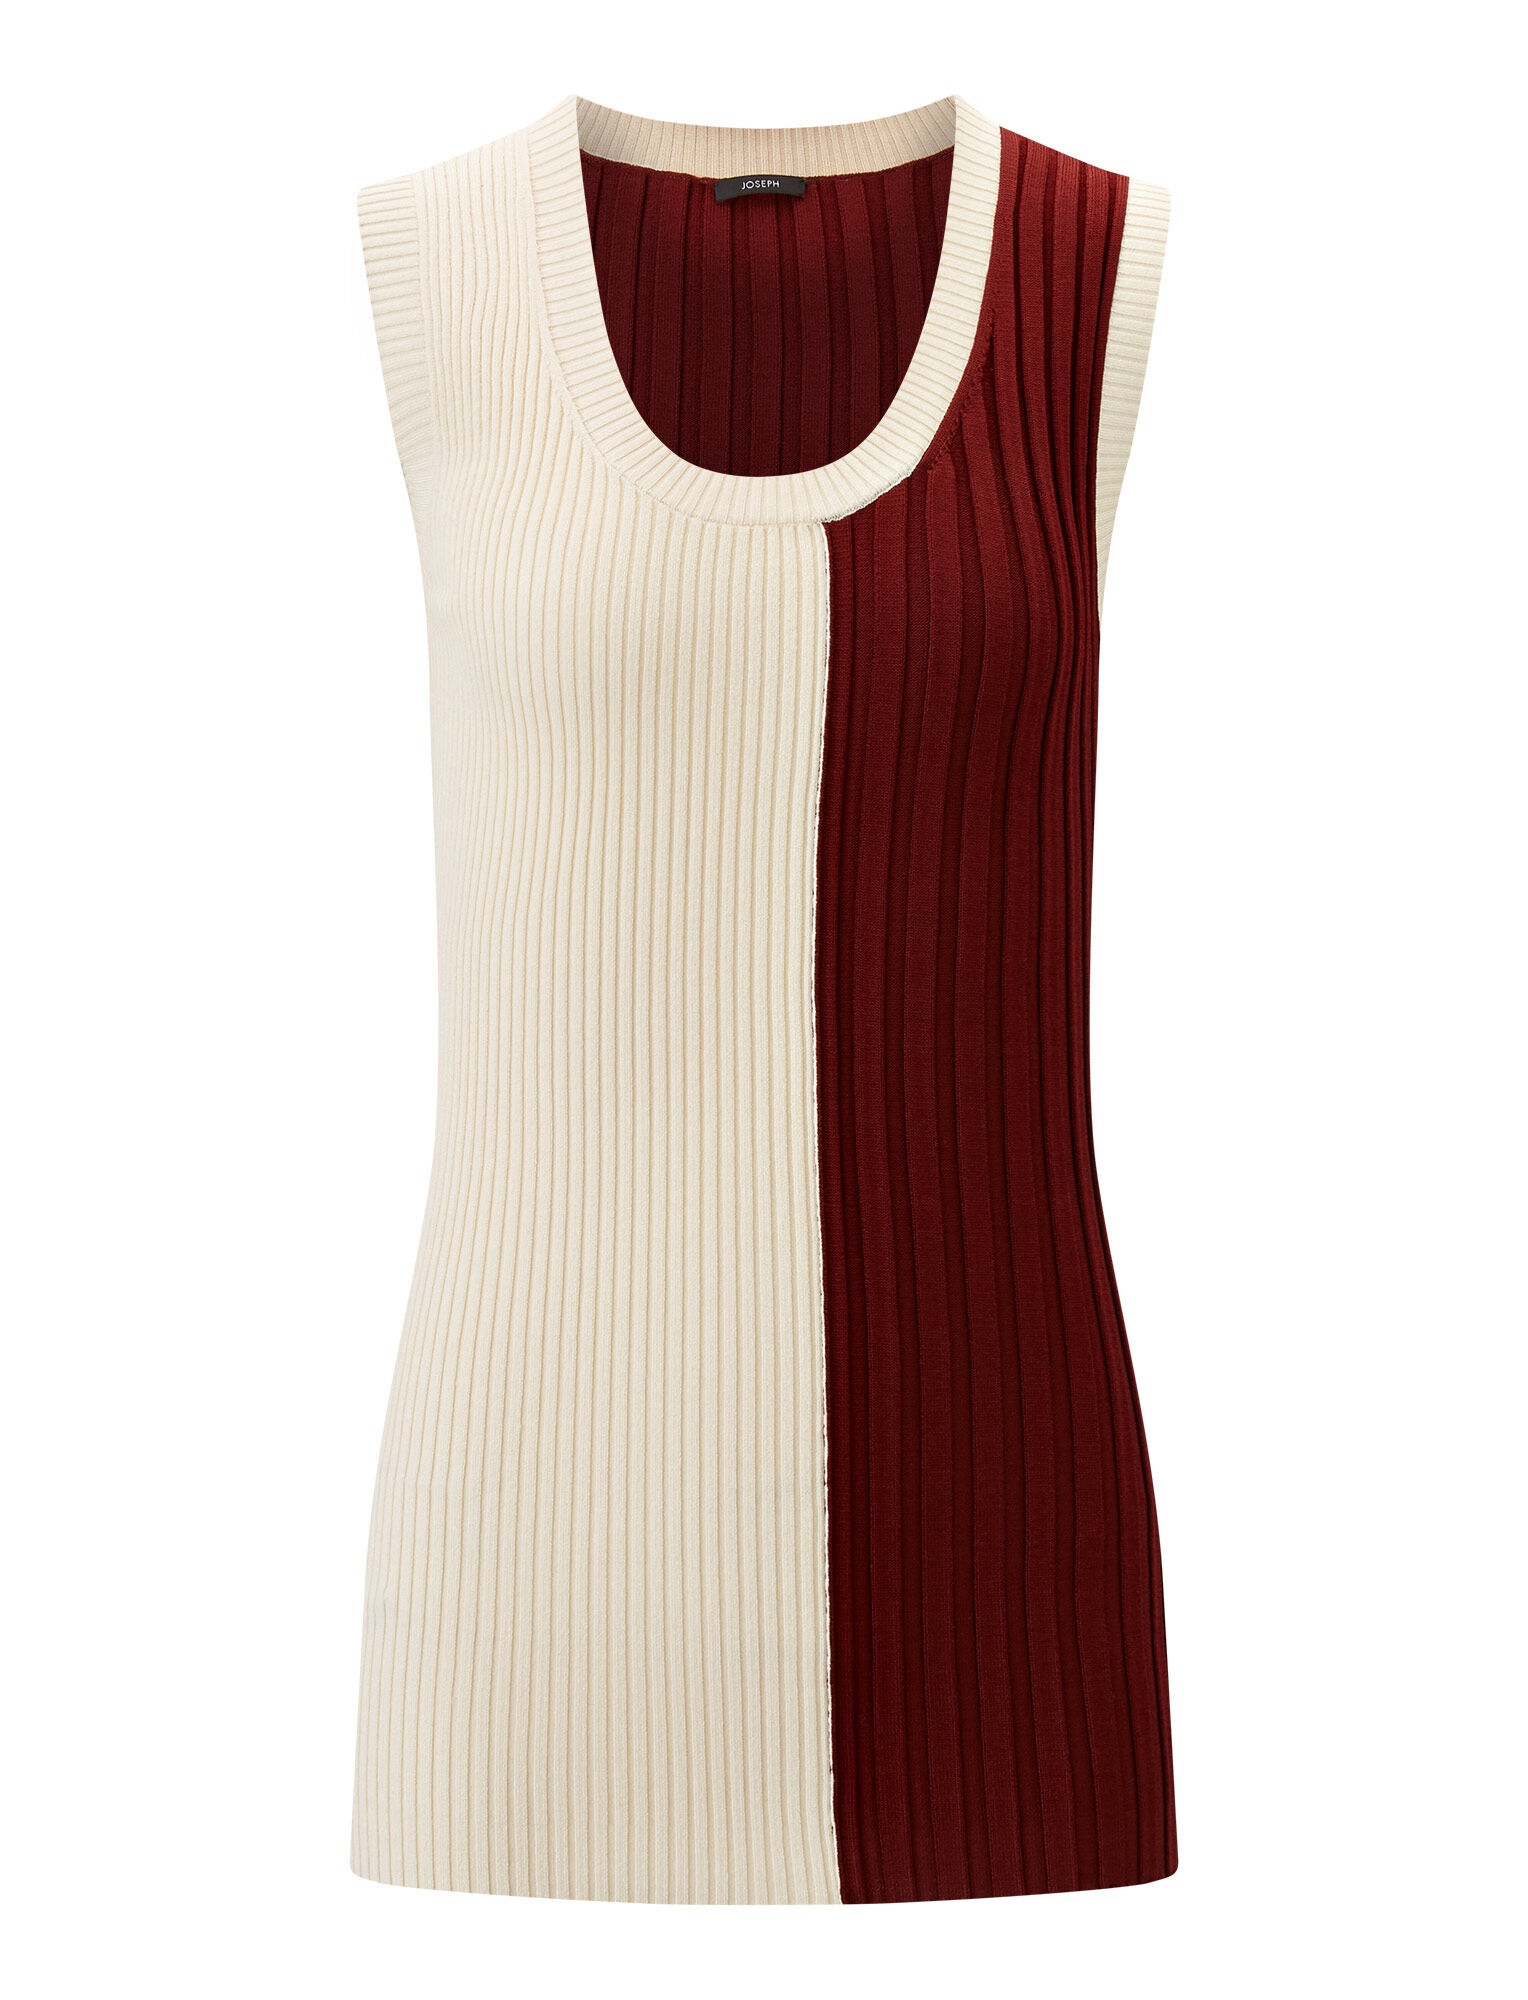 Joseph, Mix Rib Knit Tank, in MERLOT COMBO